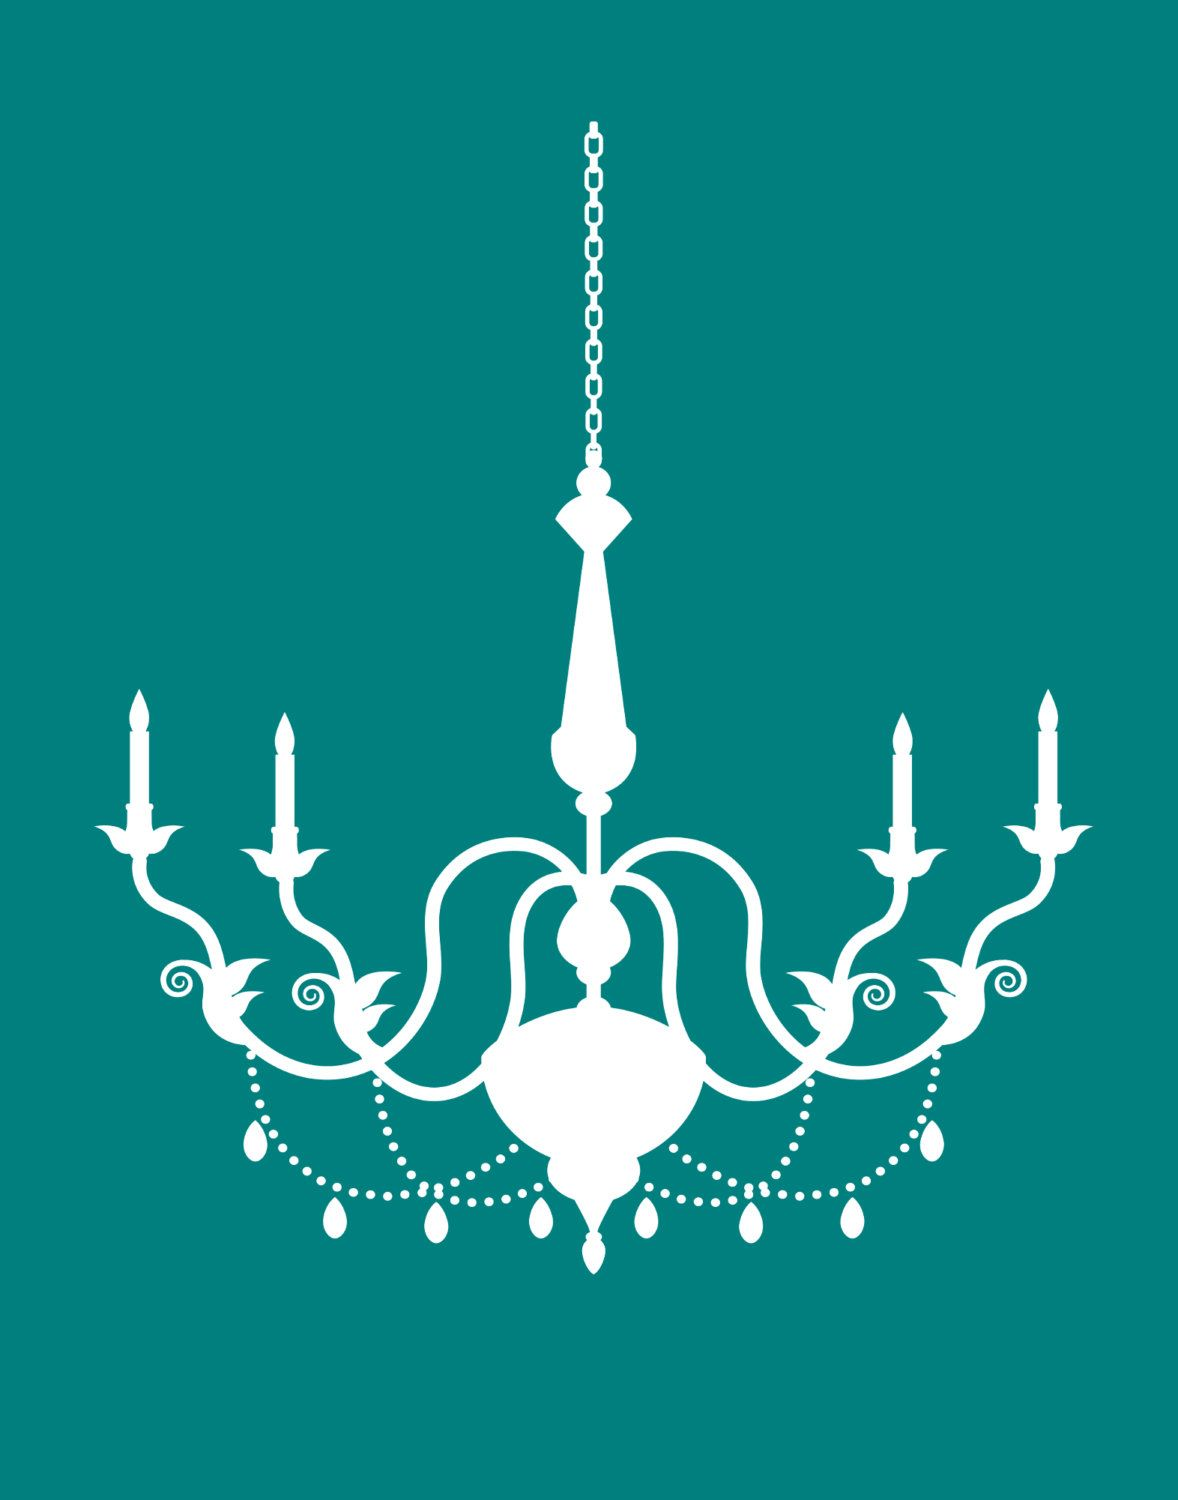 Chandelier print trio set of x chandelier silhouette posters